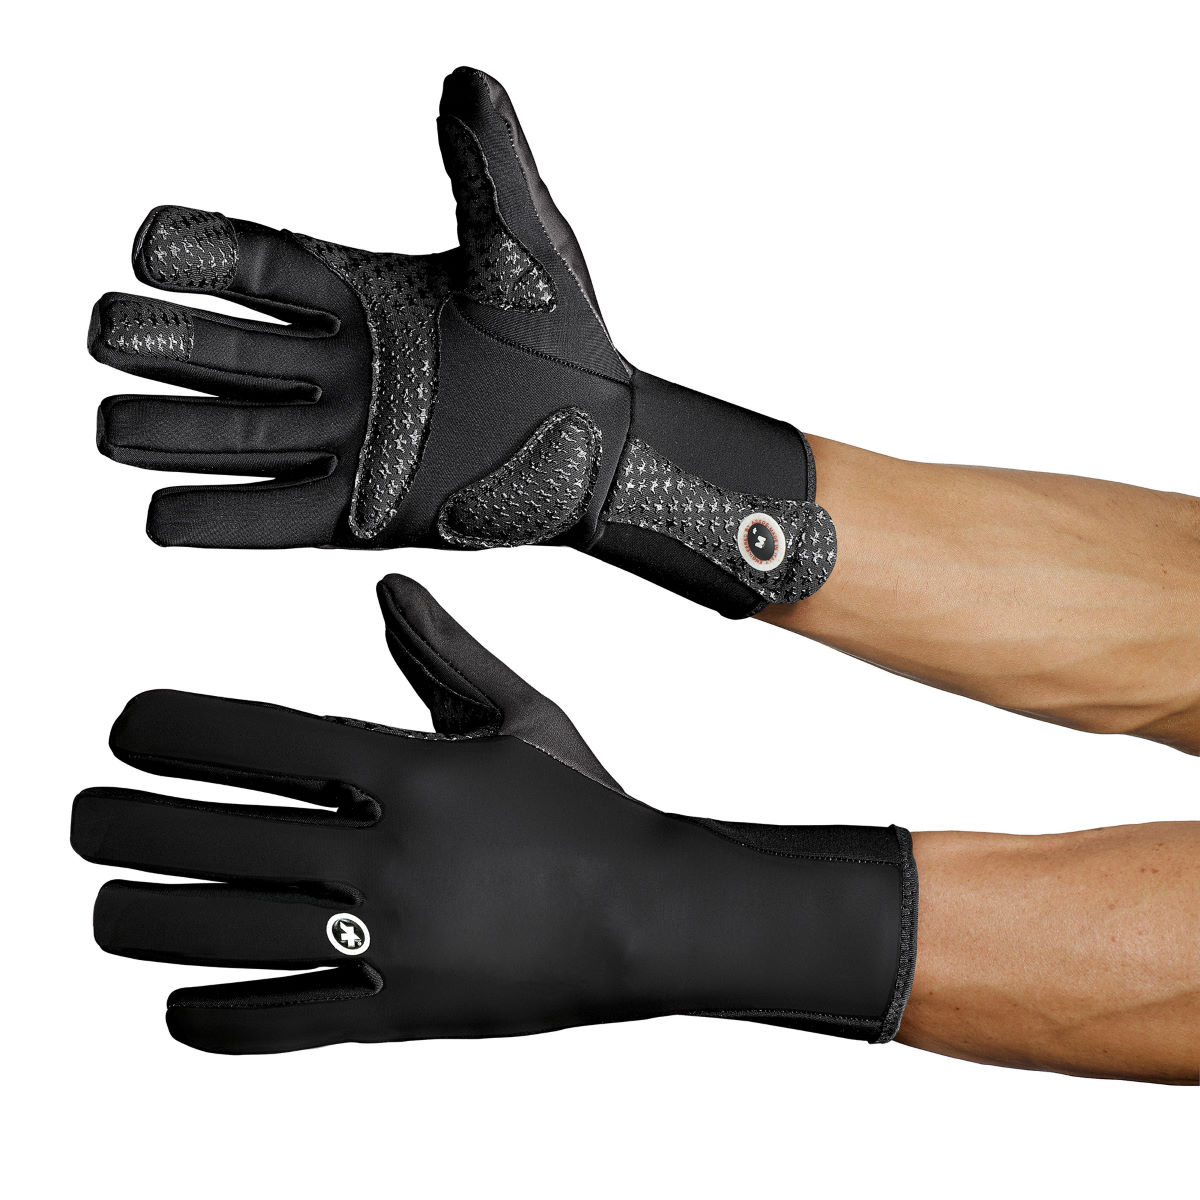 Assos earlywintergloves s7 winter gloves black volkanga p13 52 511 12 s